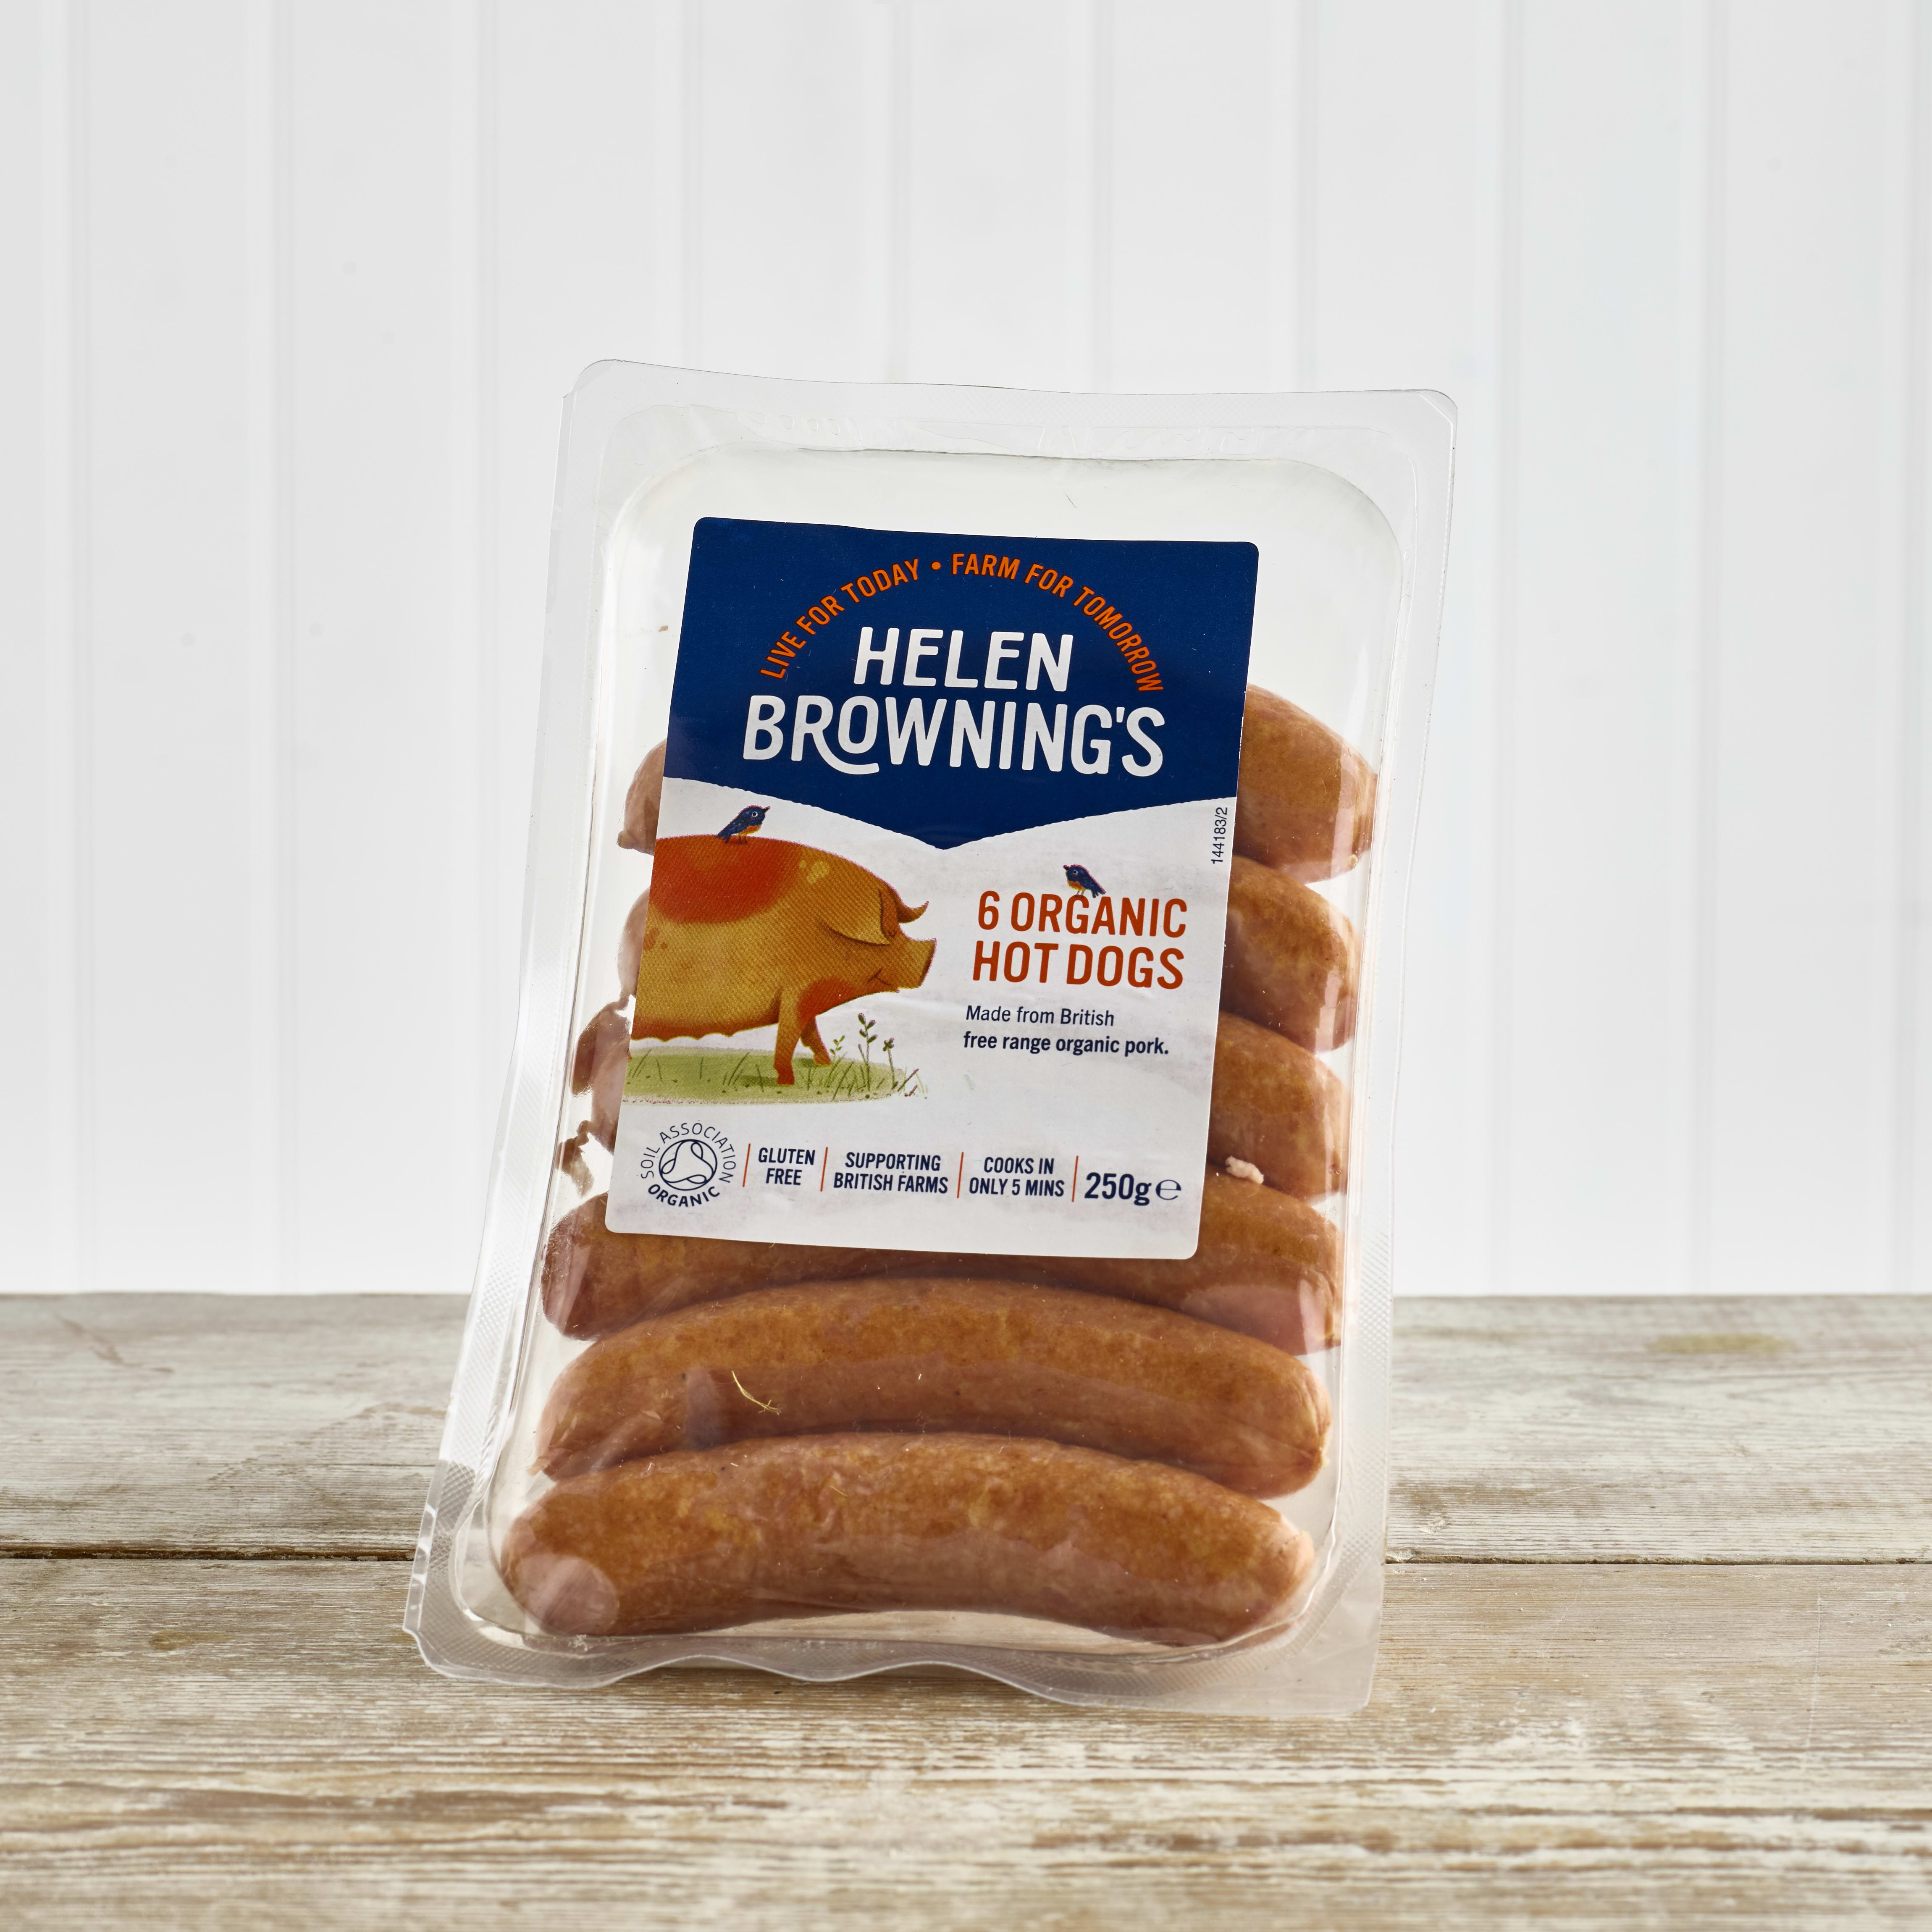 Helen Browning's Organic Hot Dogs, 6 Pack, 250g